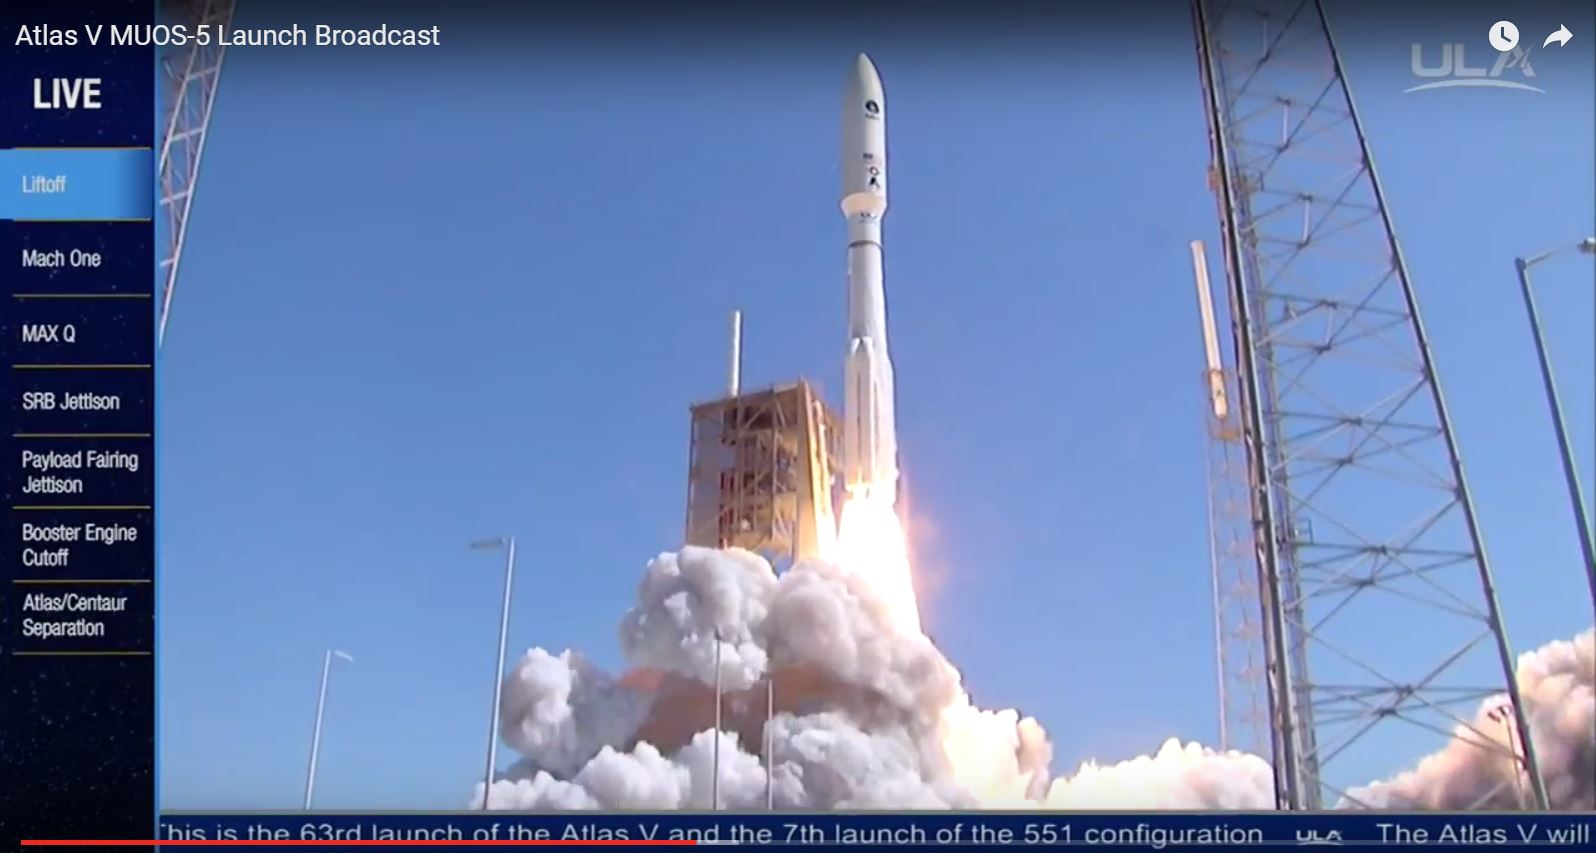 A ULA Atlas V rocket carried the MUOS-5 communication satellite into orbit on June 24 at 10:30 a.m. EDT (1430 GMT).